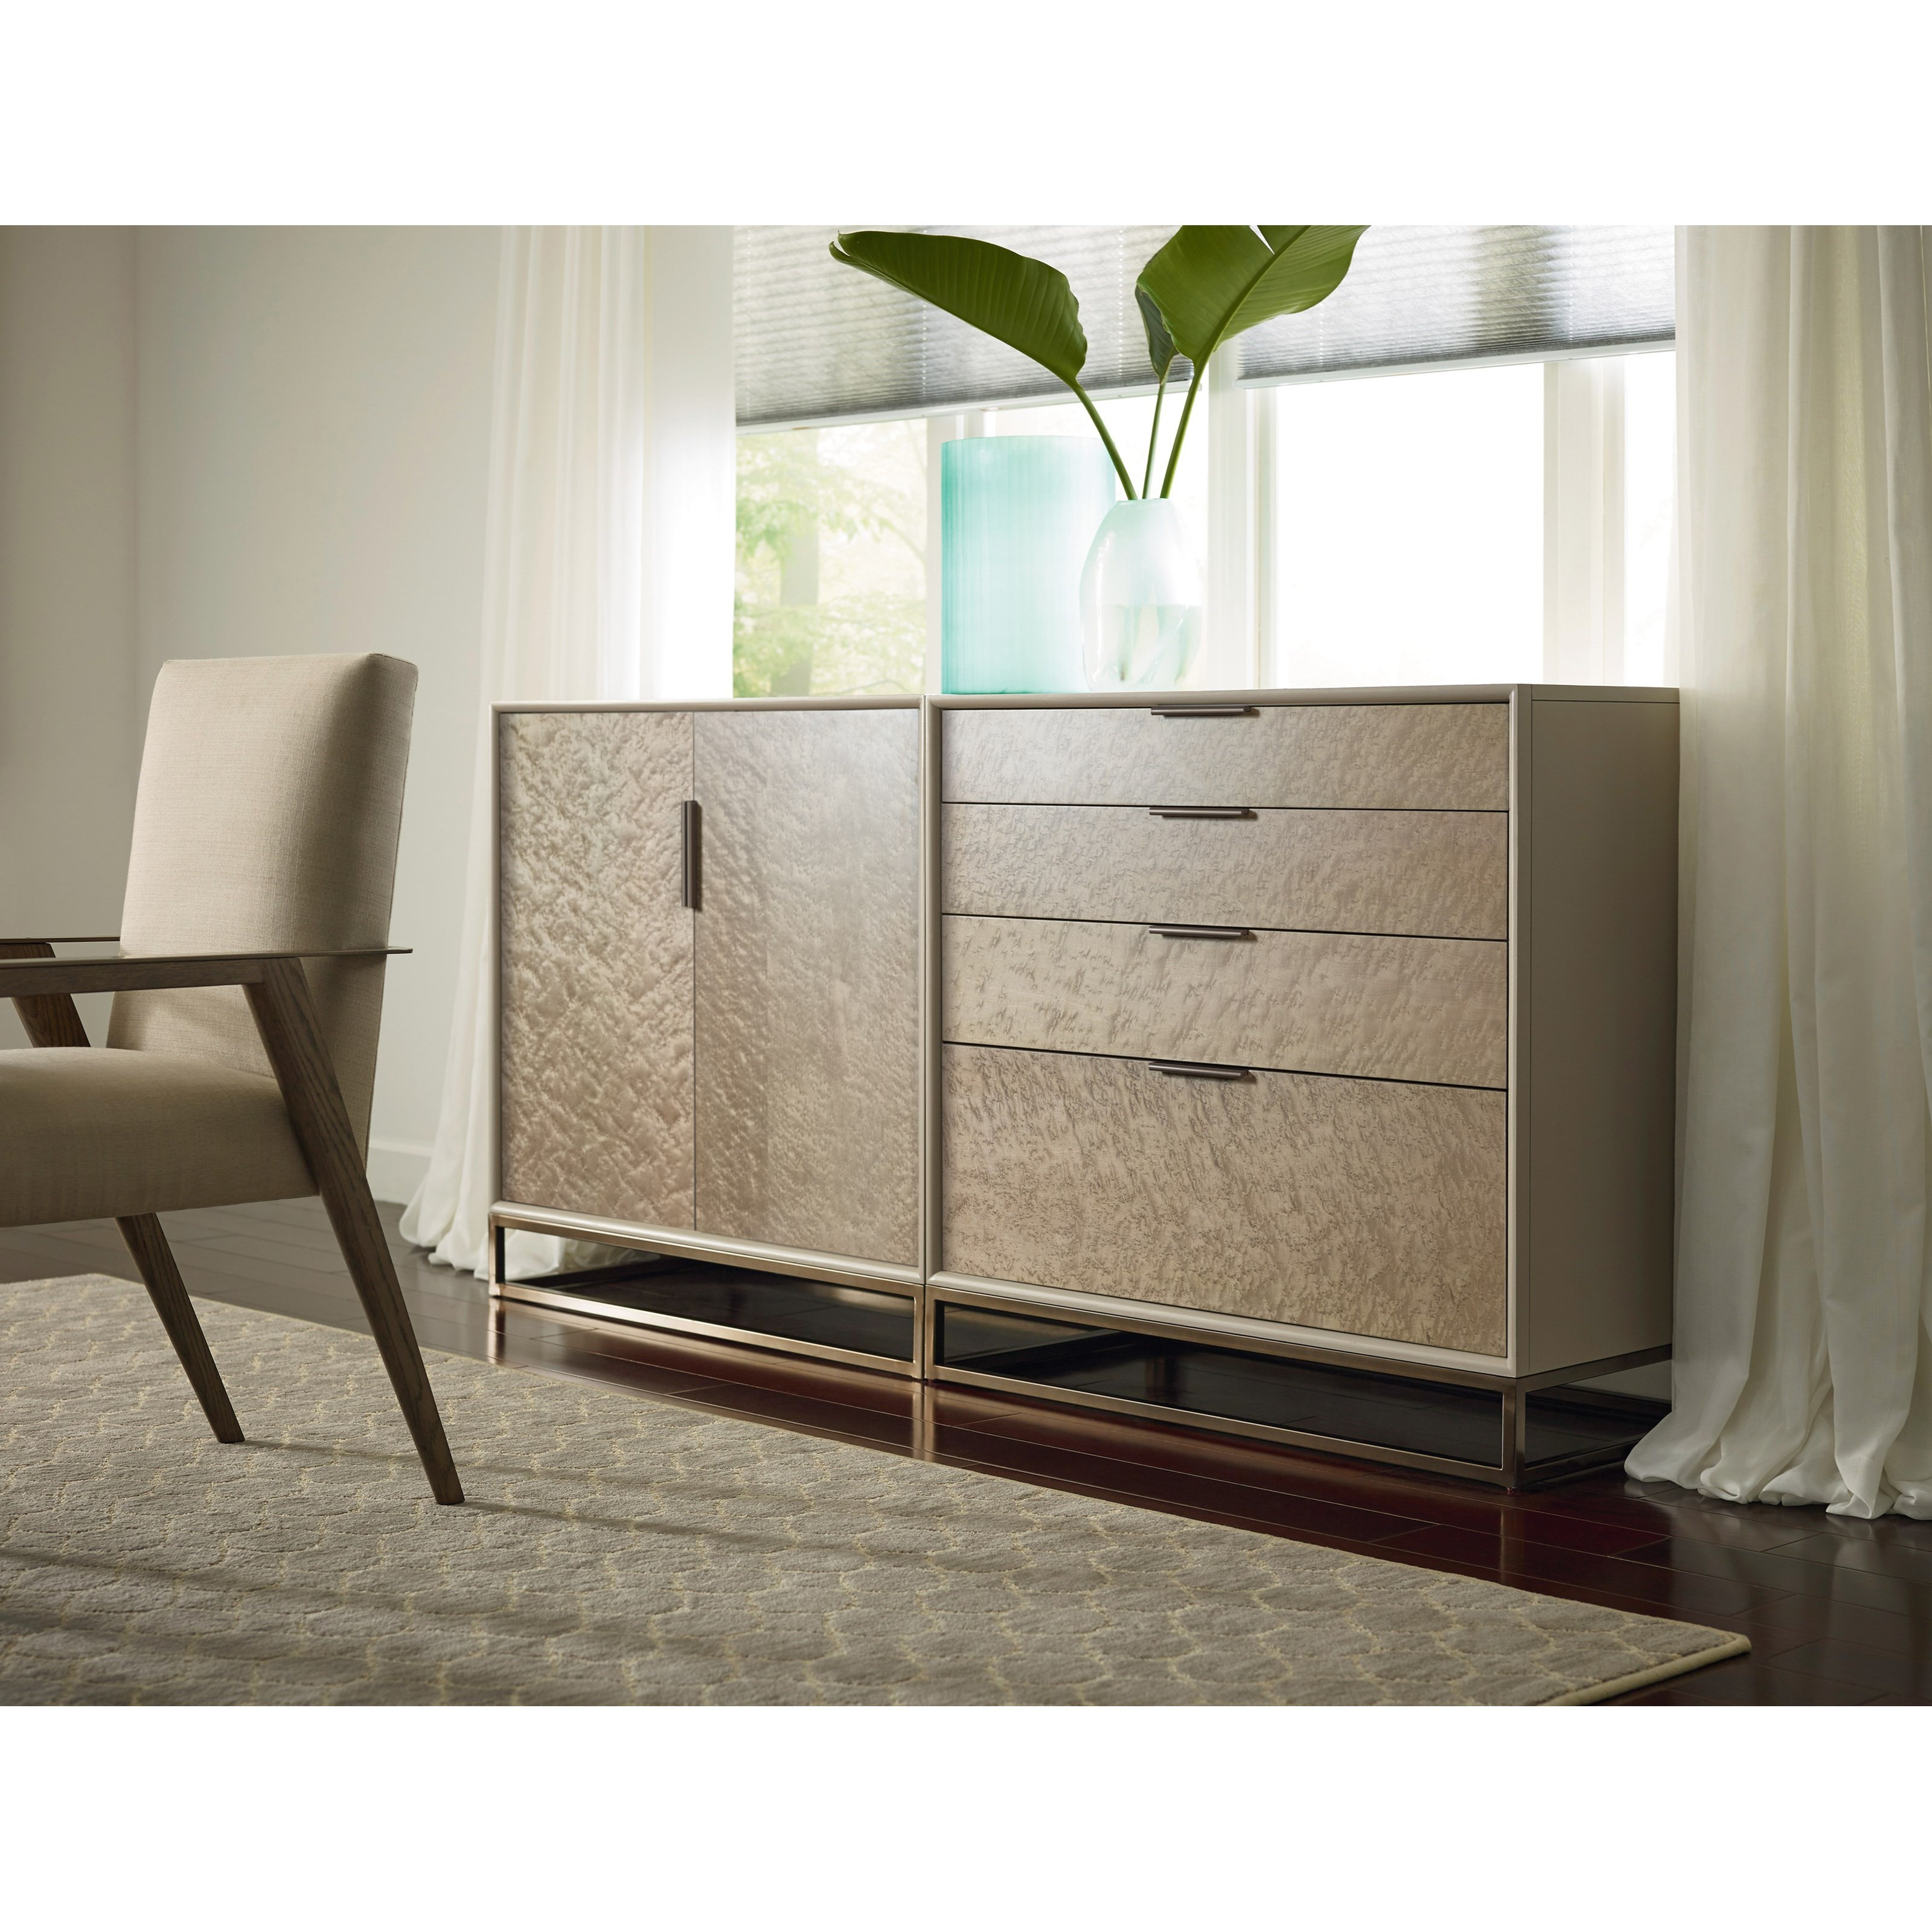 Ad Modern Classics Dining Buffet by American Drew at Value City Furniture